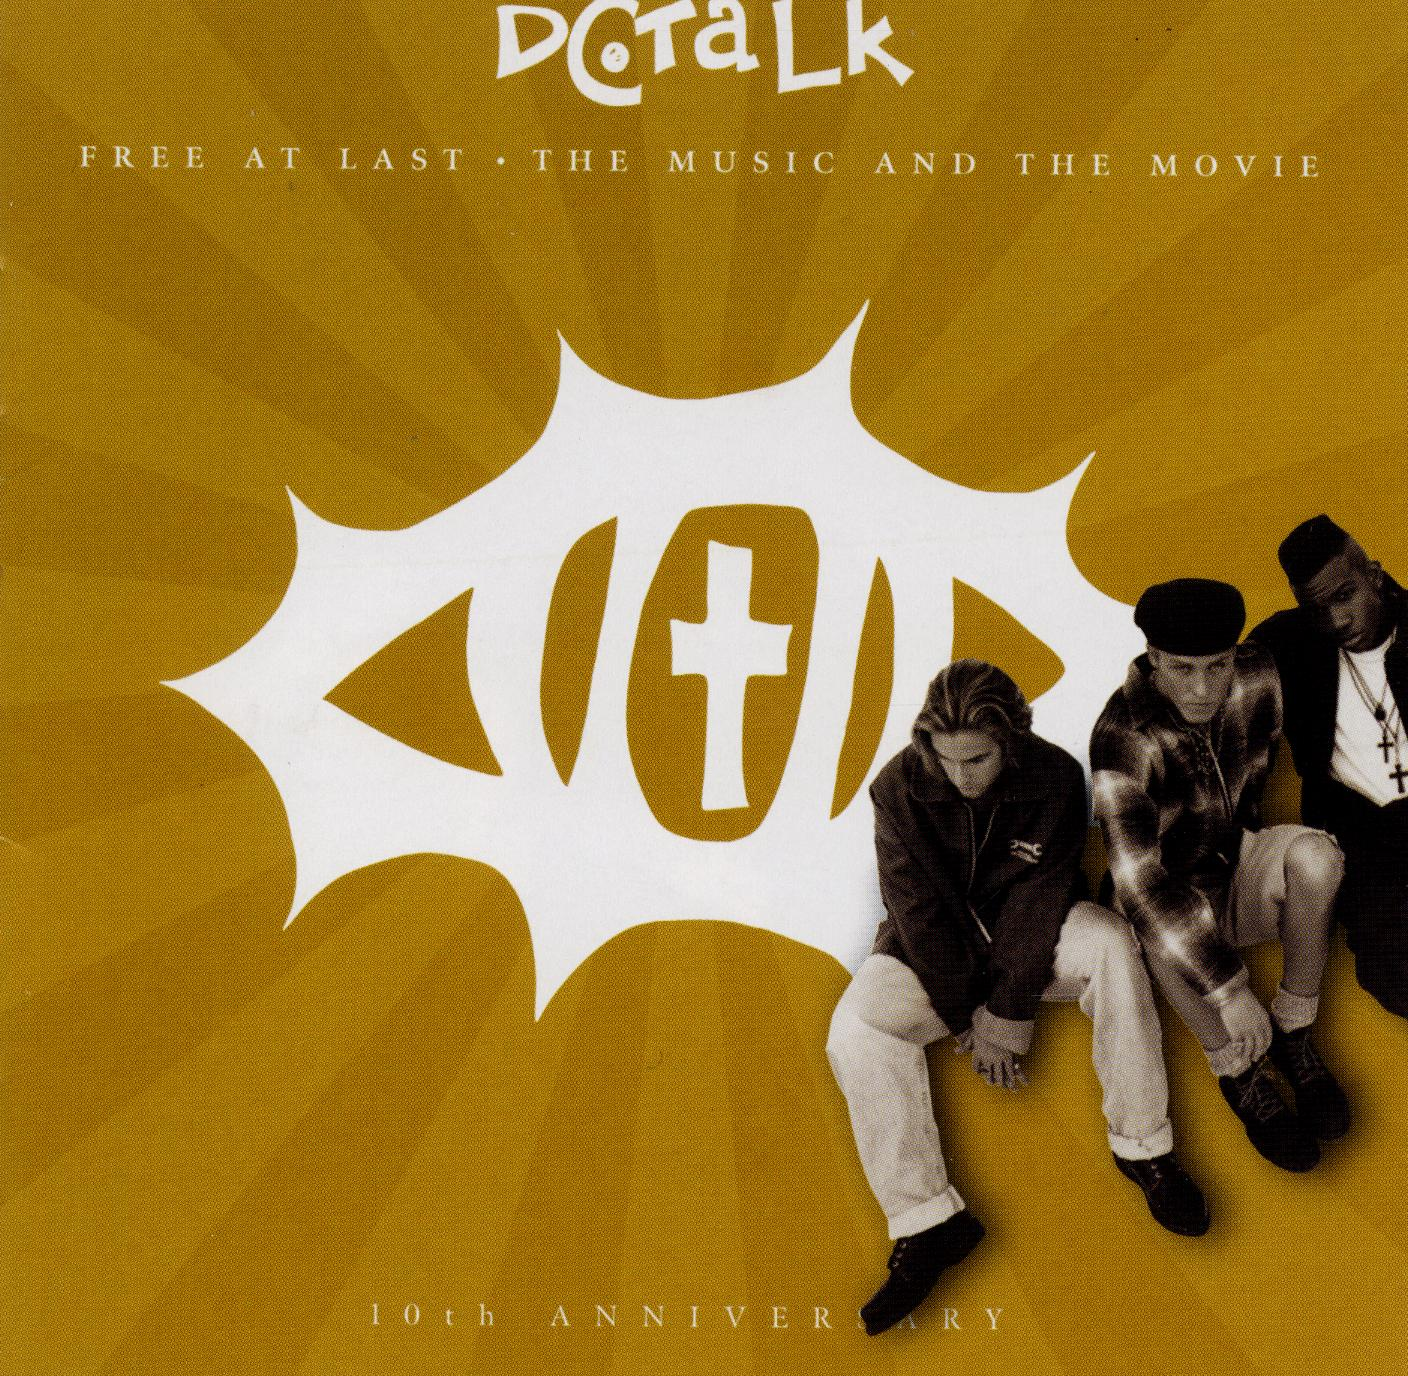 DC Talk: Free at Last - The Movie